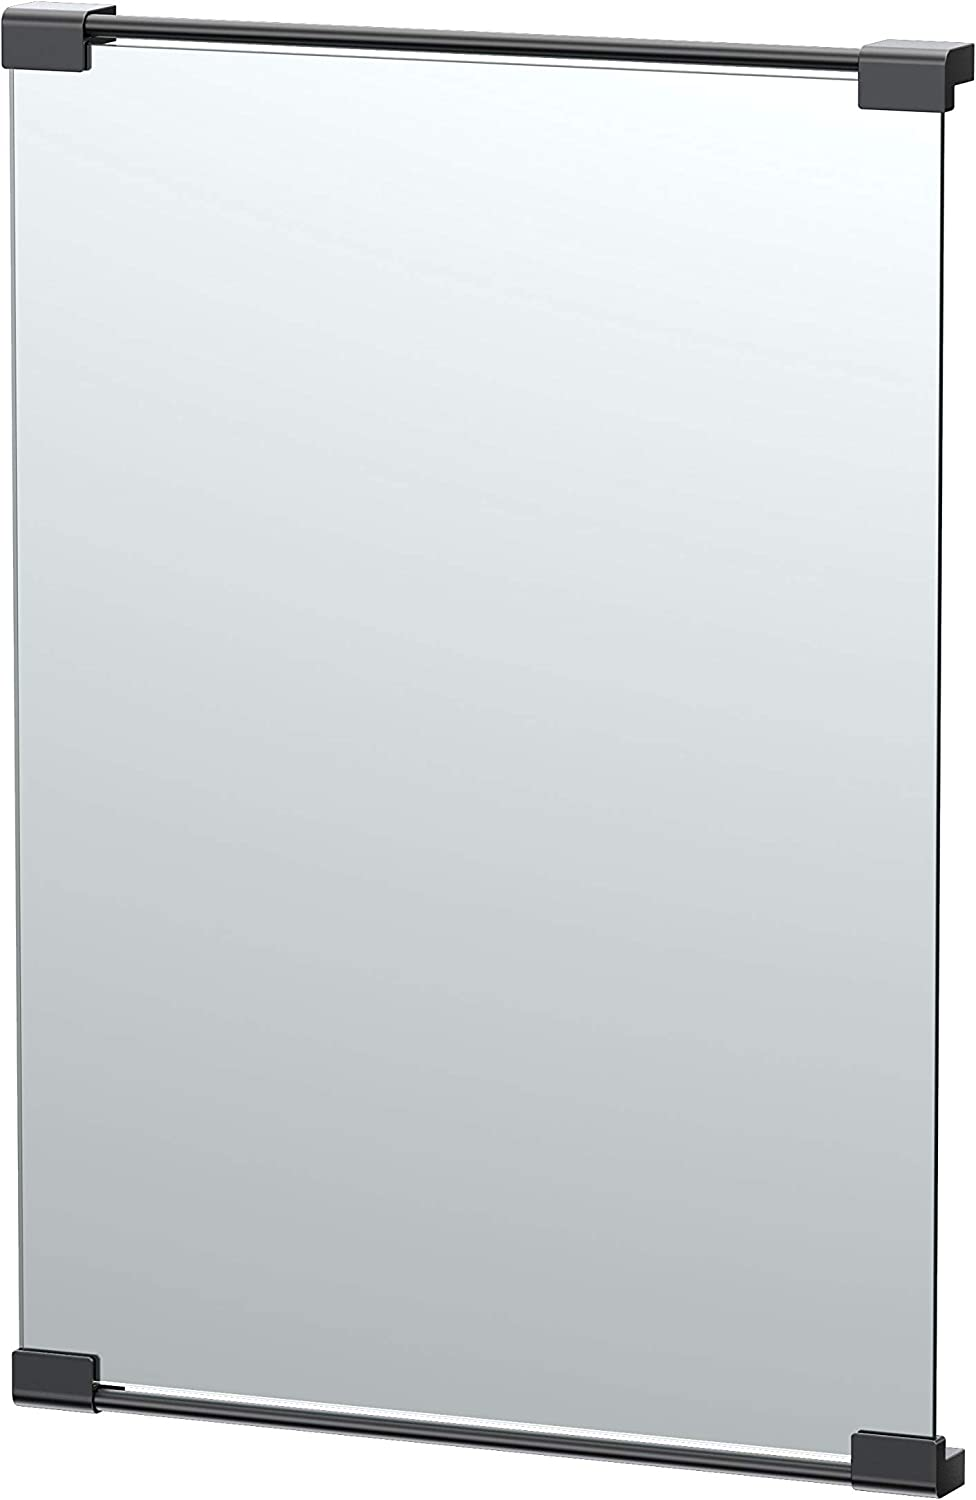 Gatco Fixed Mount Rectangle Mirror, 30 Inch, Matte Black